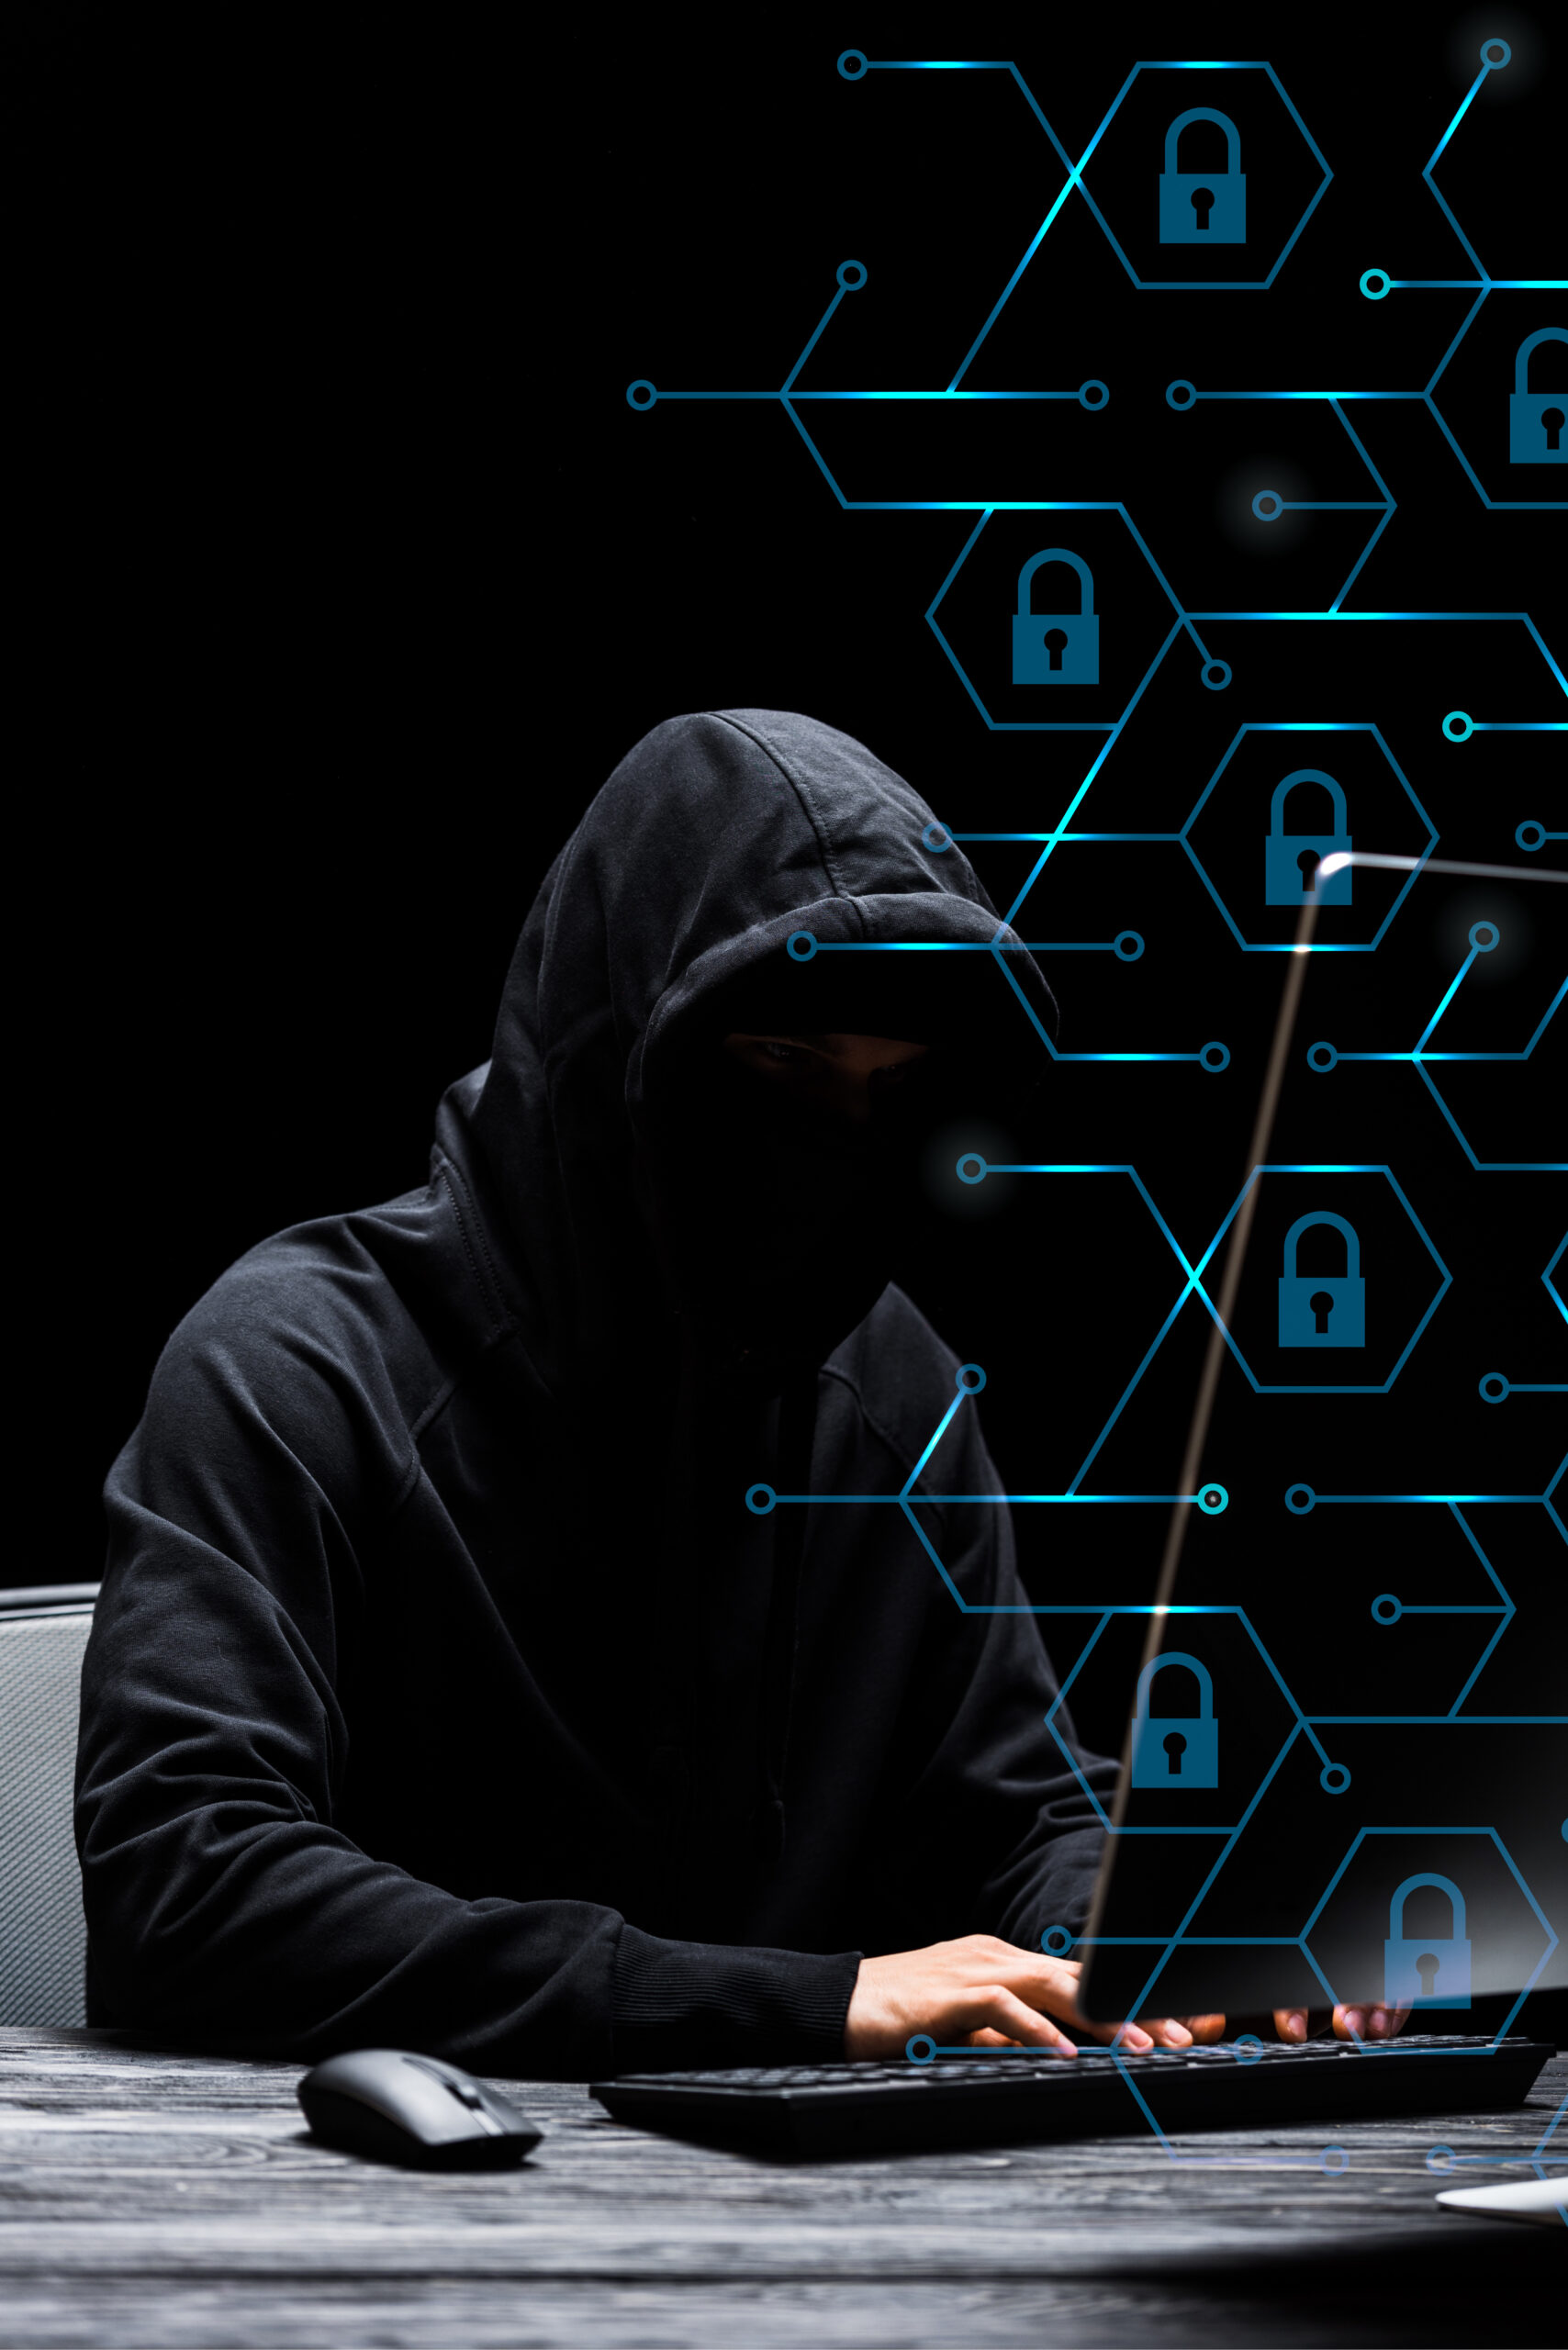 Are your Credentials already in Cyber Criminals' Hands?